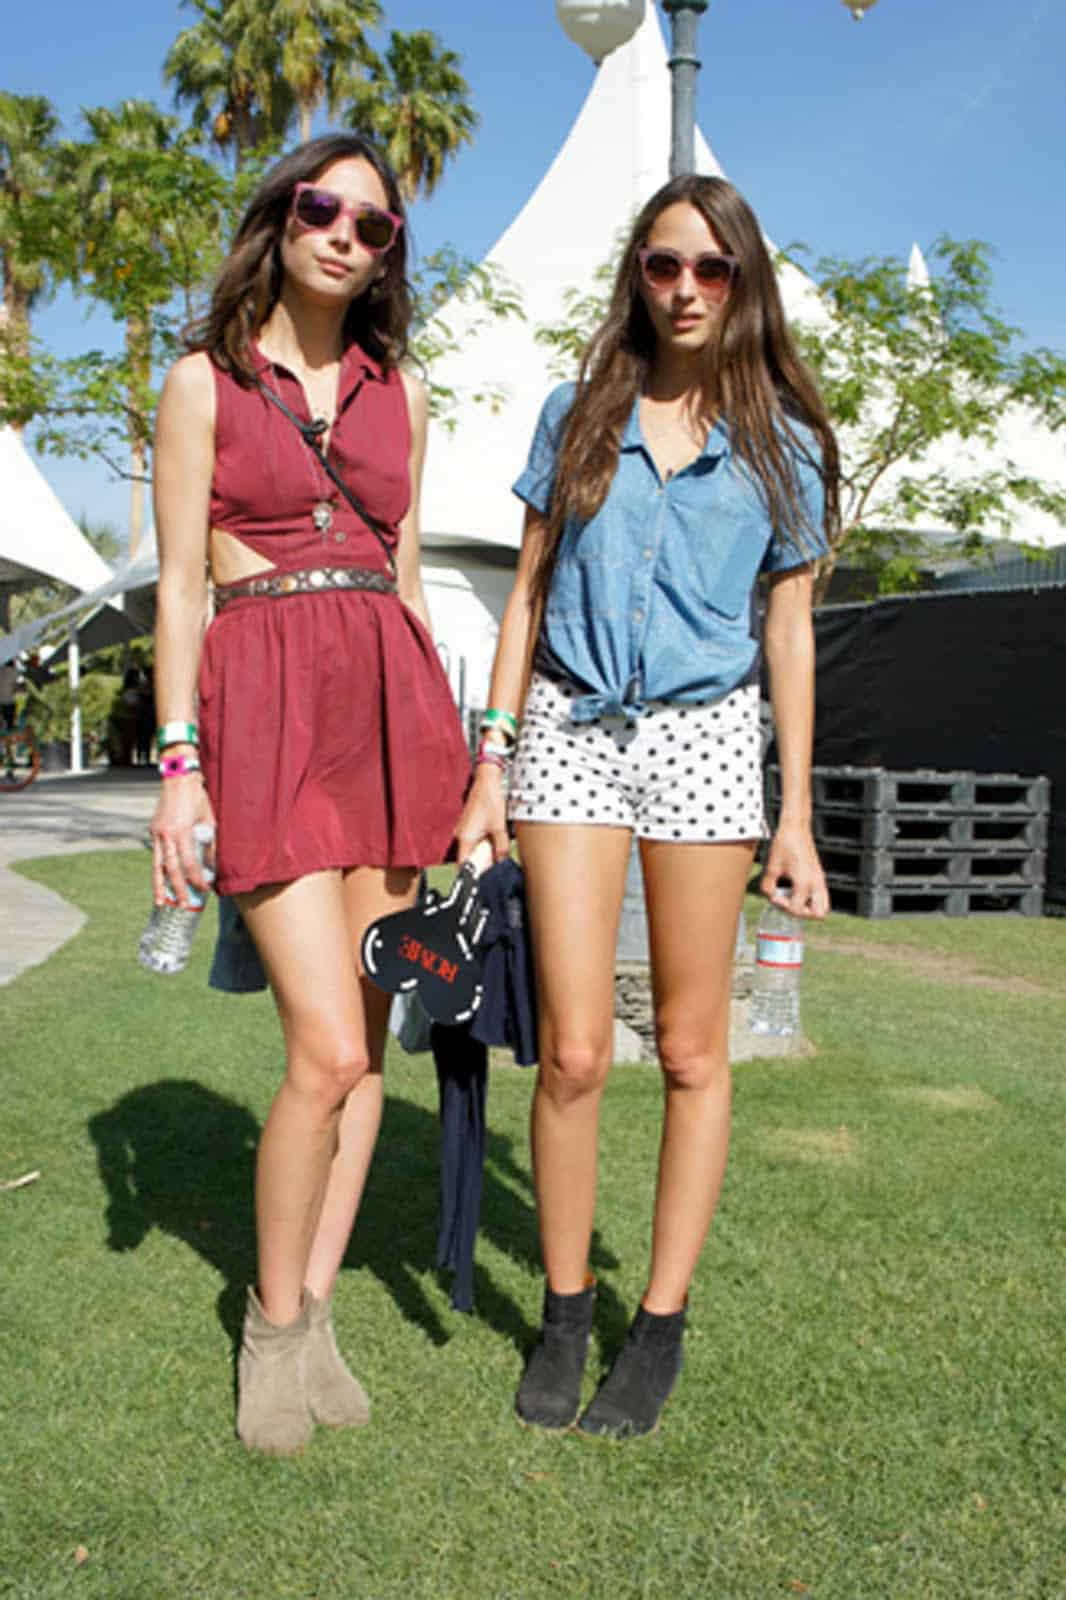 Coachella Fashion Close-up! What To Wear To The Festival? Grunge u0026 Boho-chic Looks u0026 Styles ...